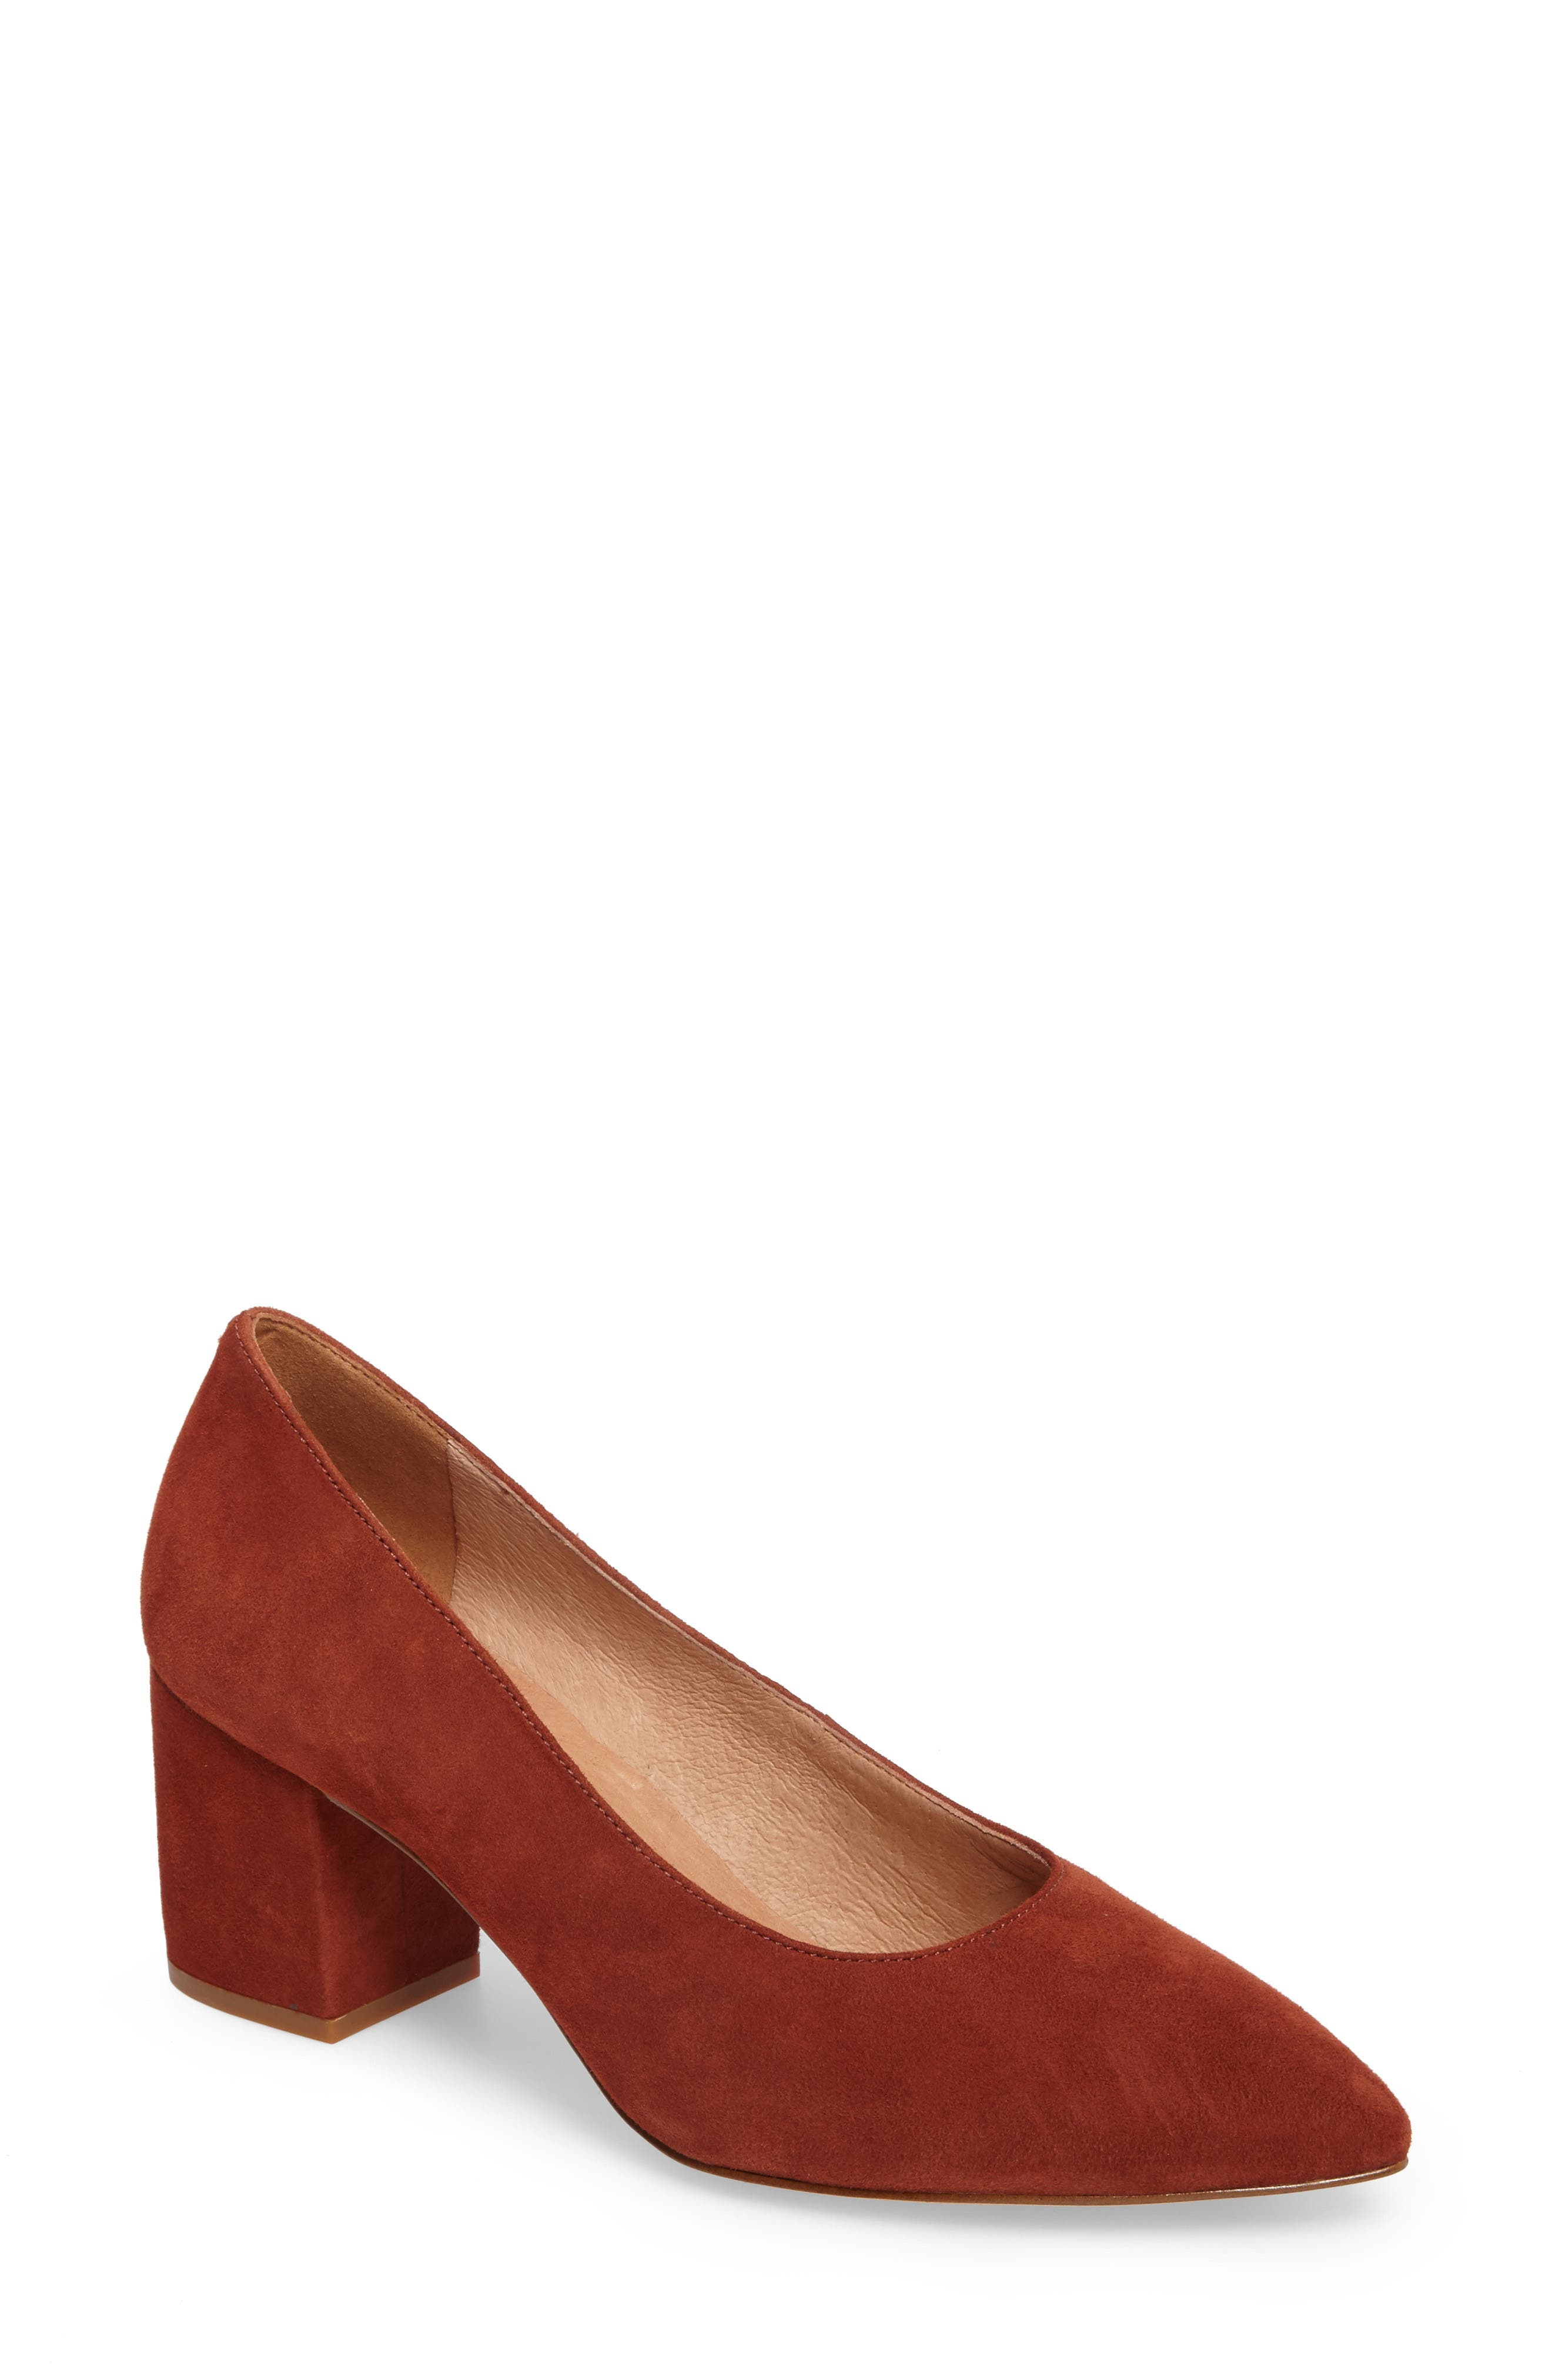 Rivka Pointy Toe Pump,                             Main thumbnail 1, color,                             Vintage Redwood Suede